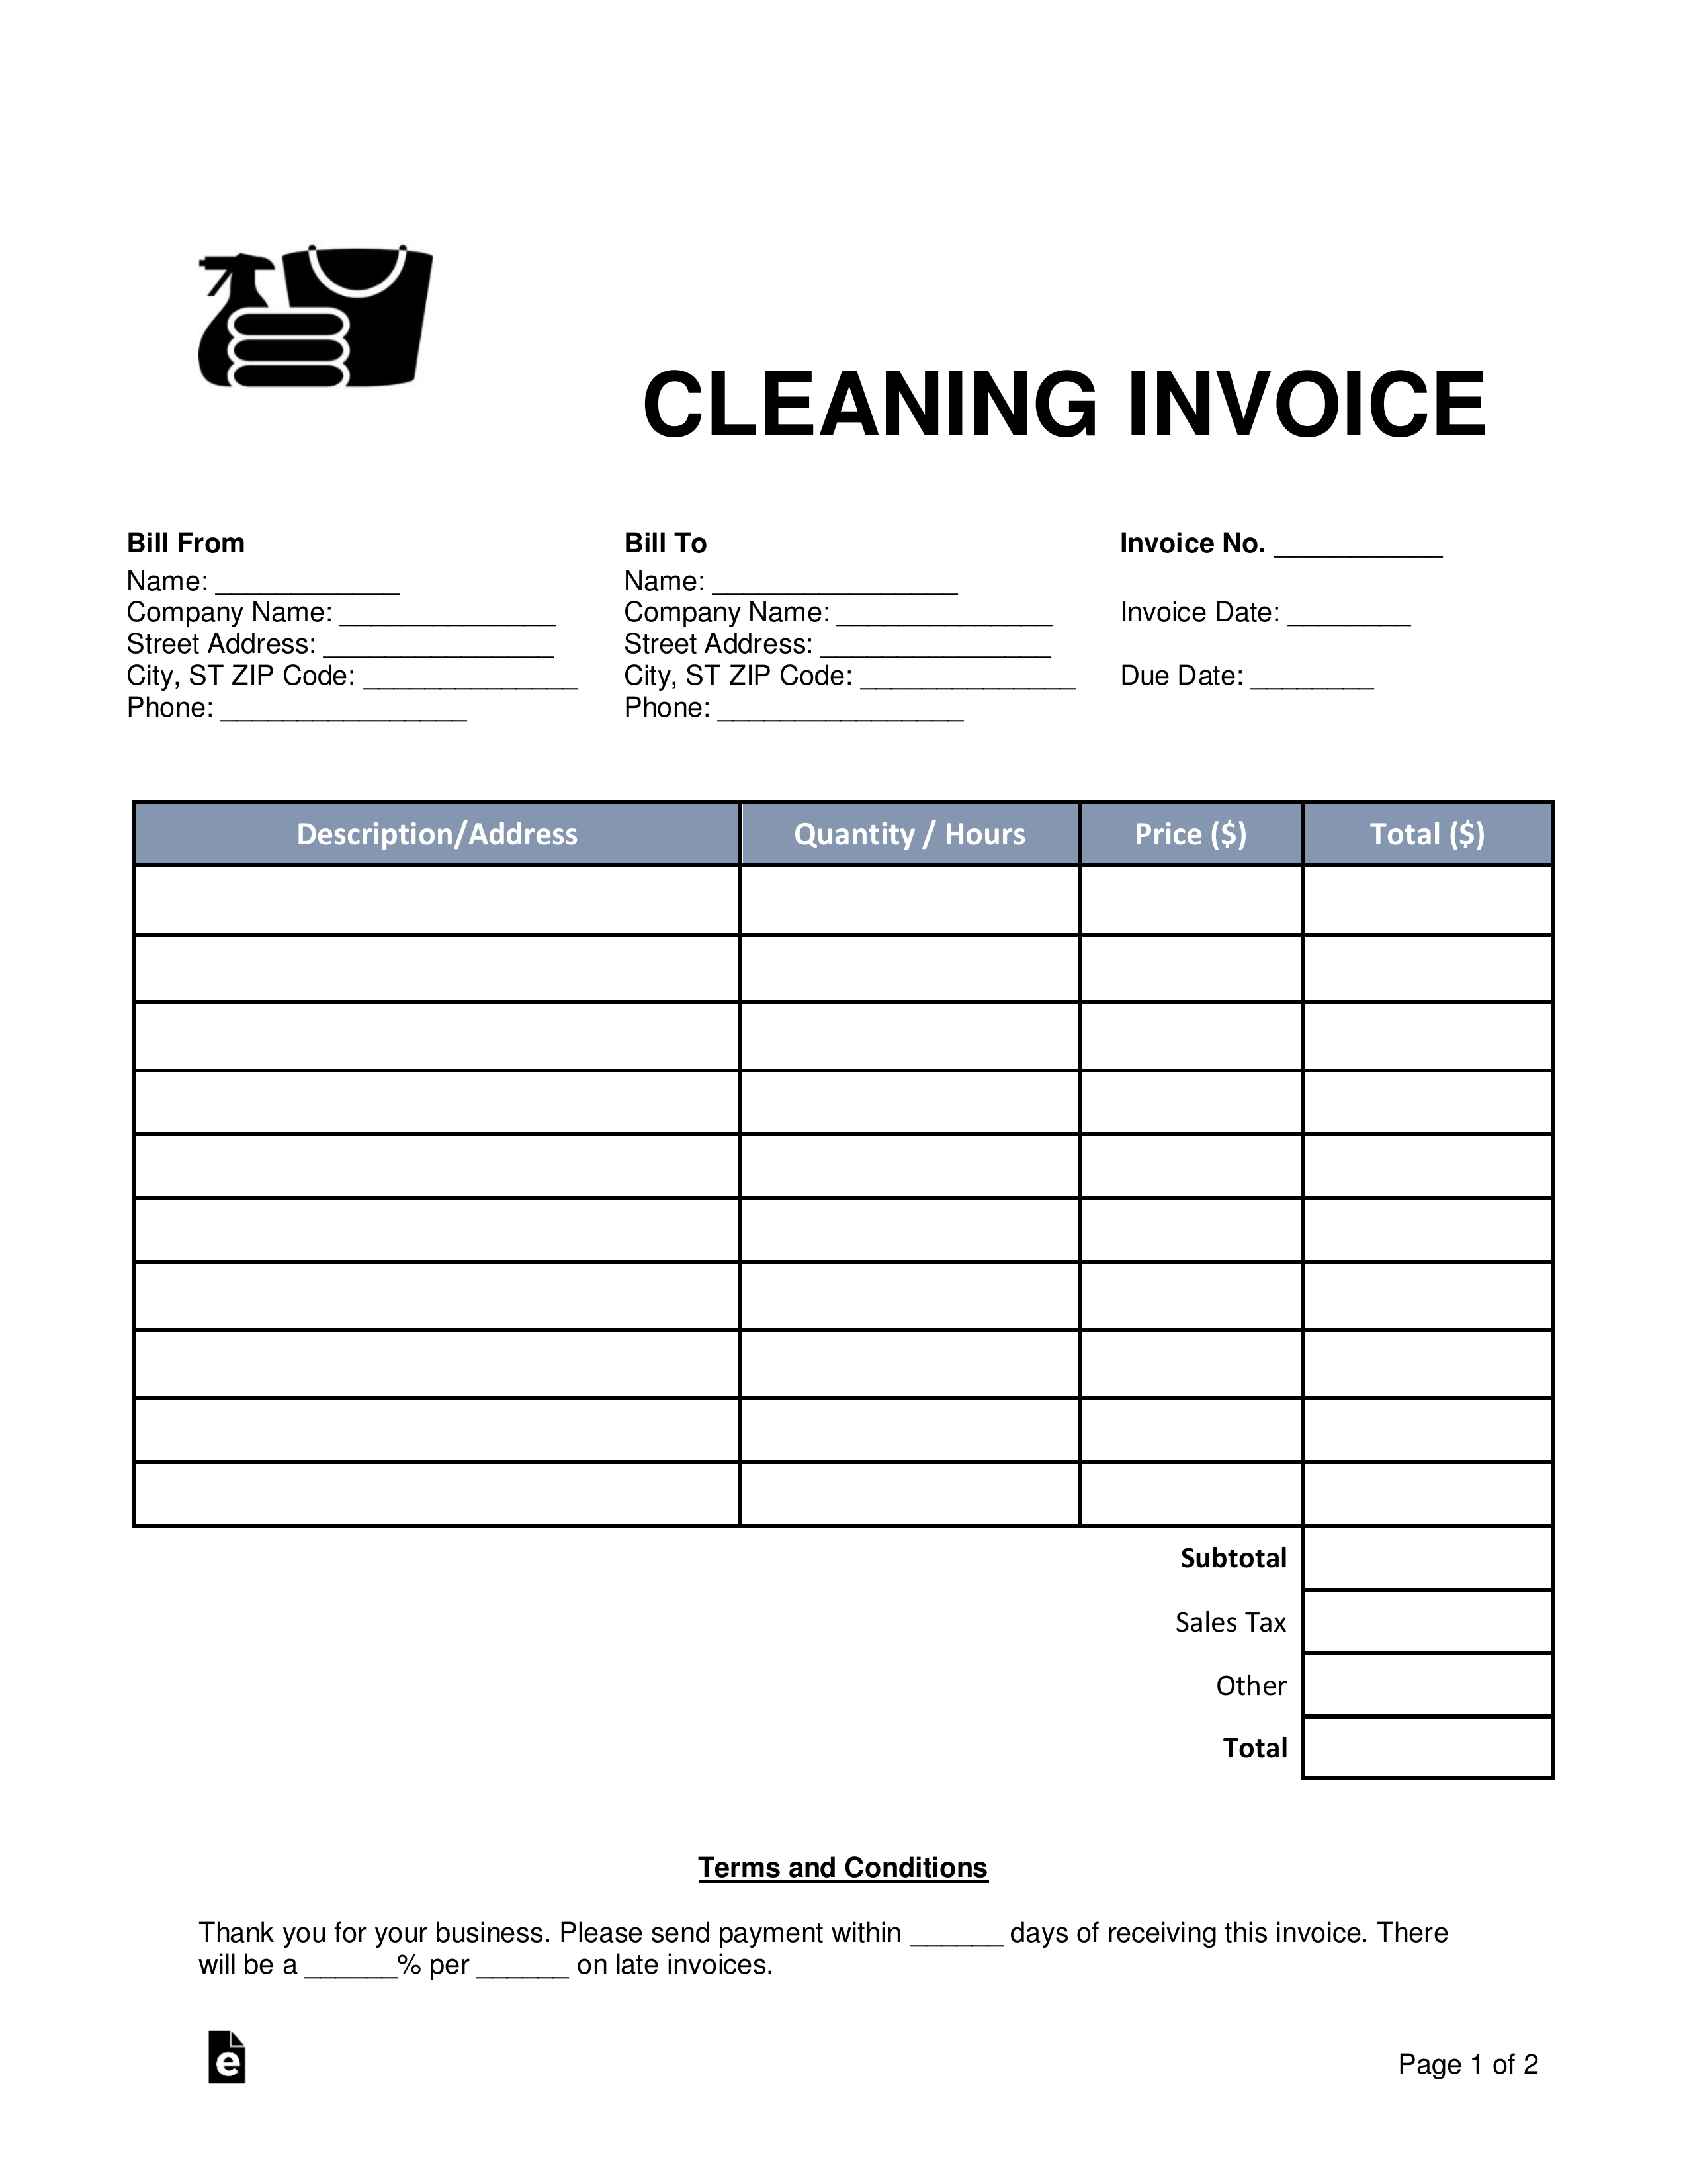 free cleaning housekeeping invoice template word pdf invoices for cleaning business